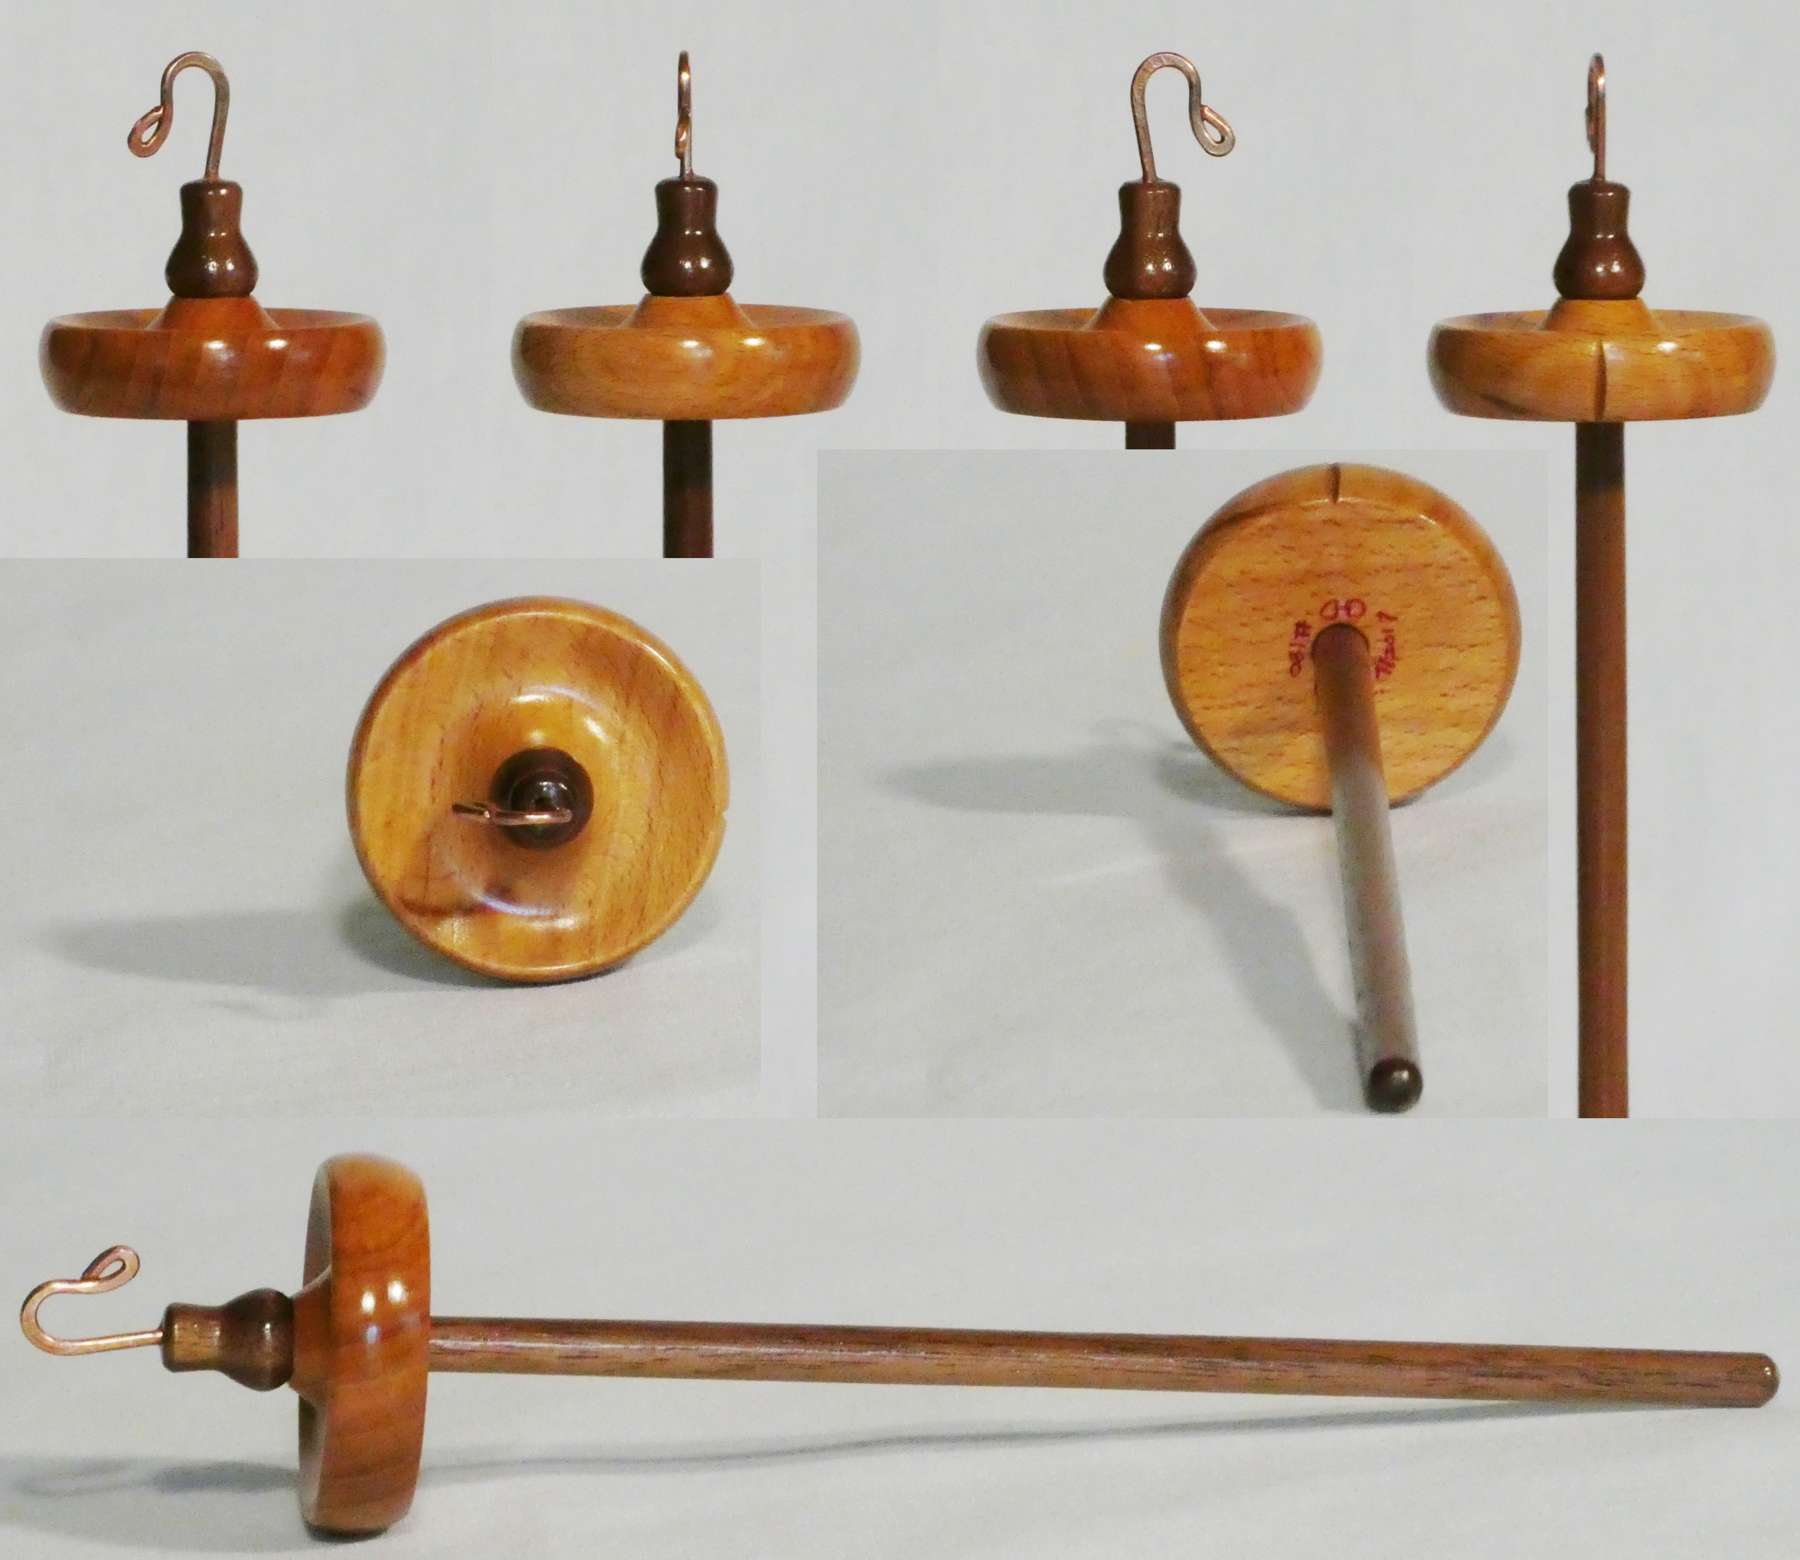 Handmade top whorl drop spindle for handspinning lace yarn from Beech and Walnut by Cynthia D. Haney spindle maker, signed number 180.